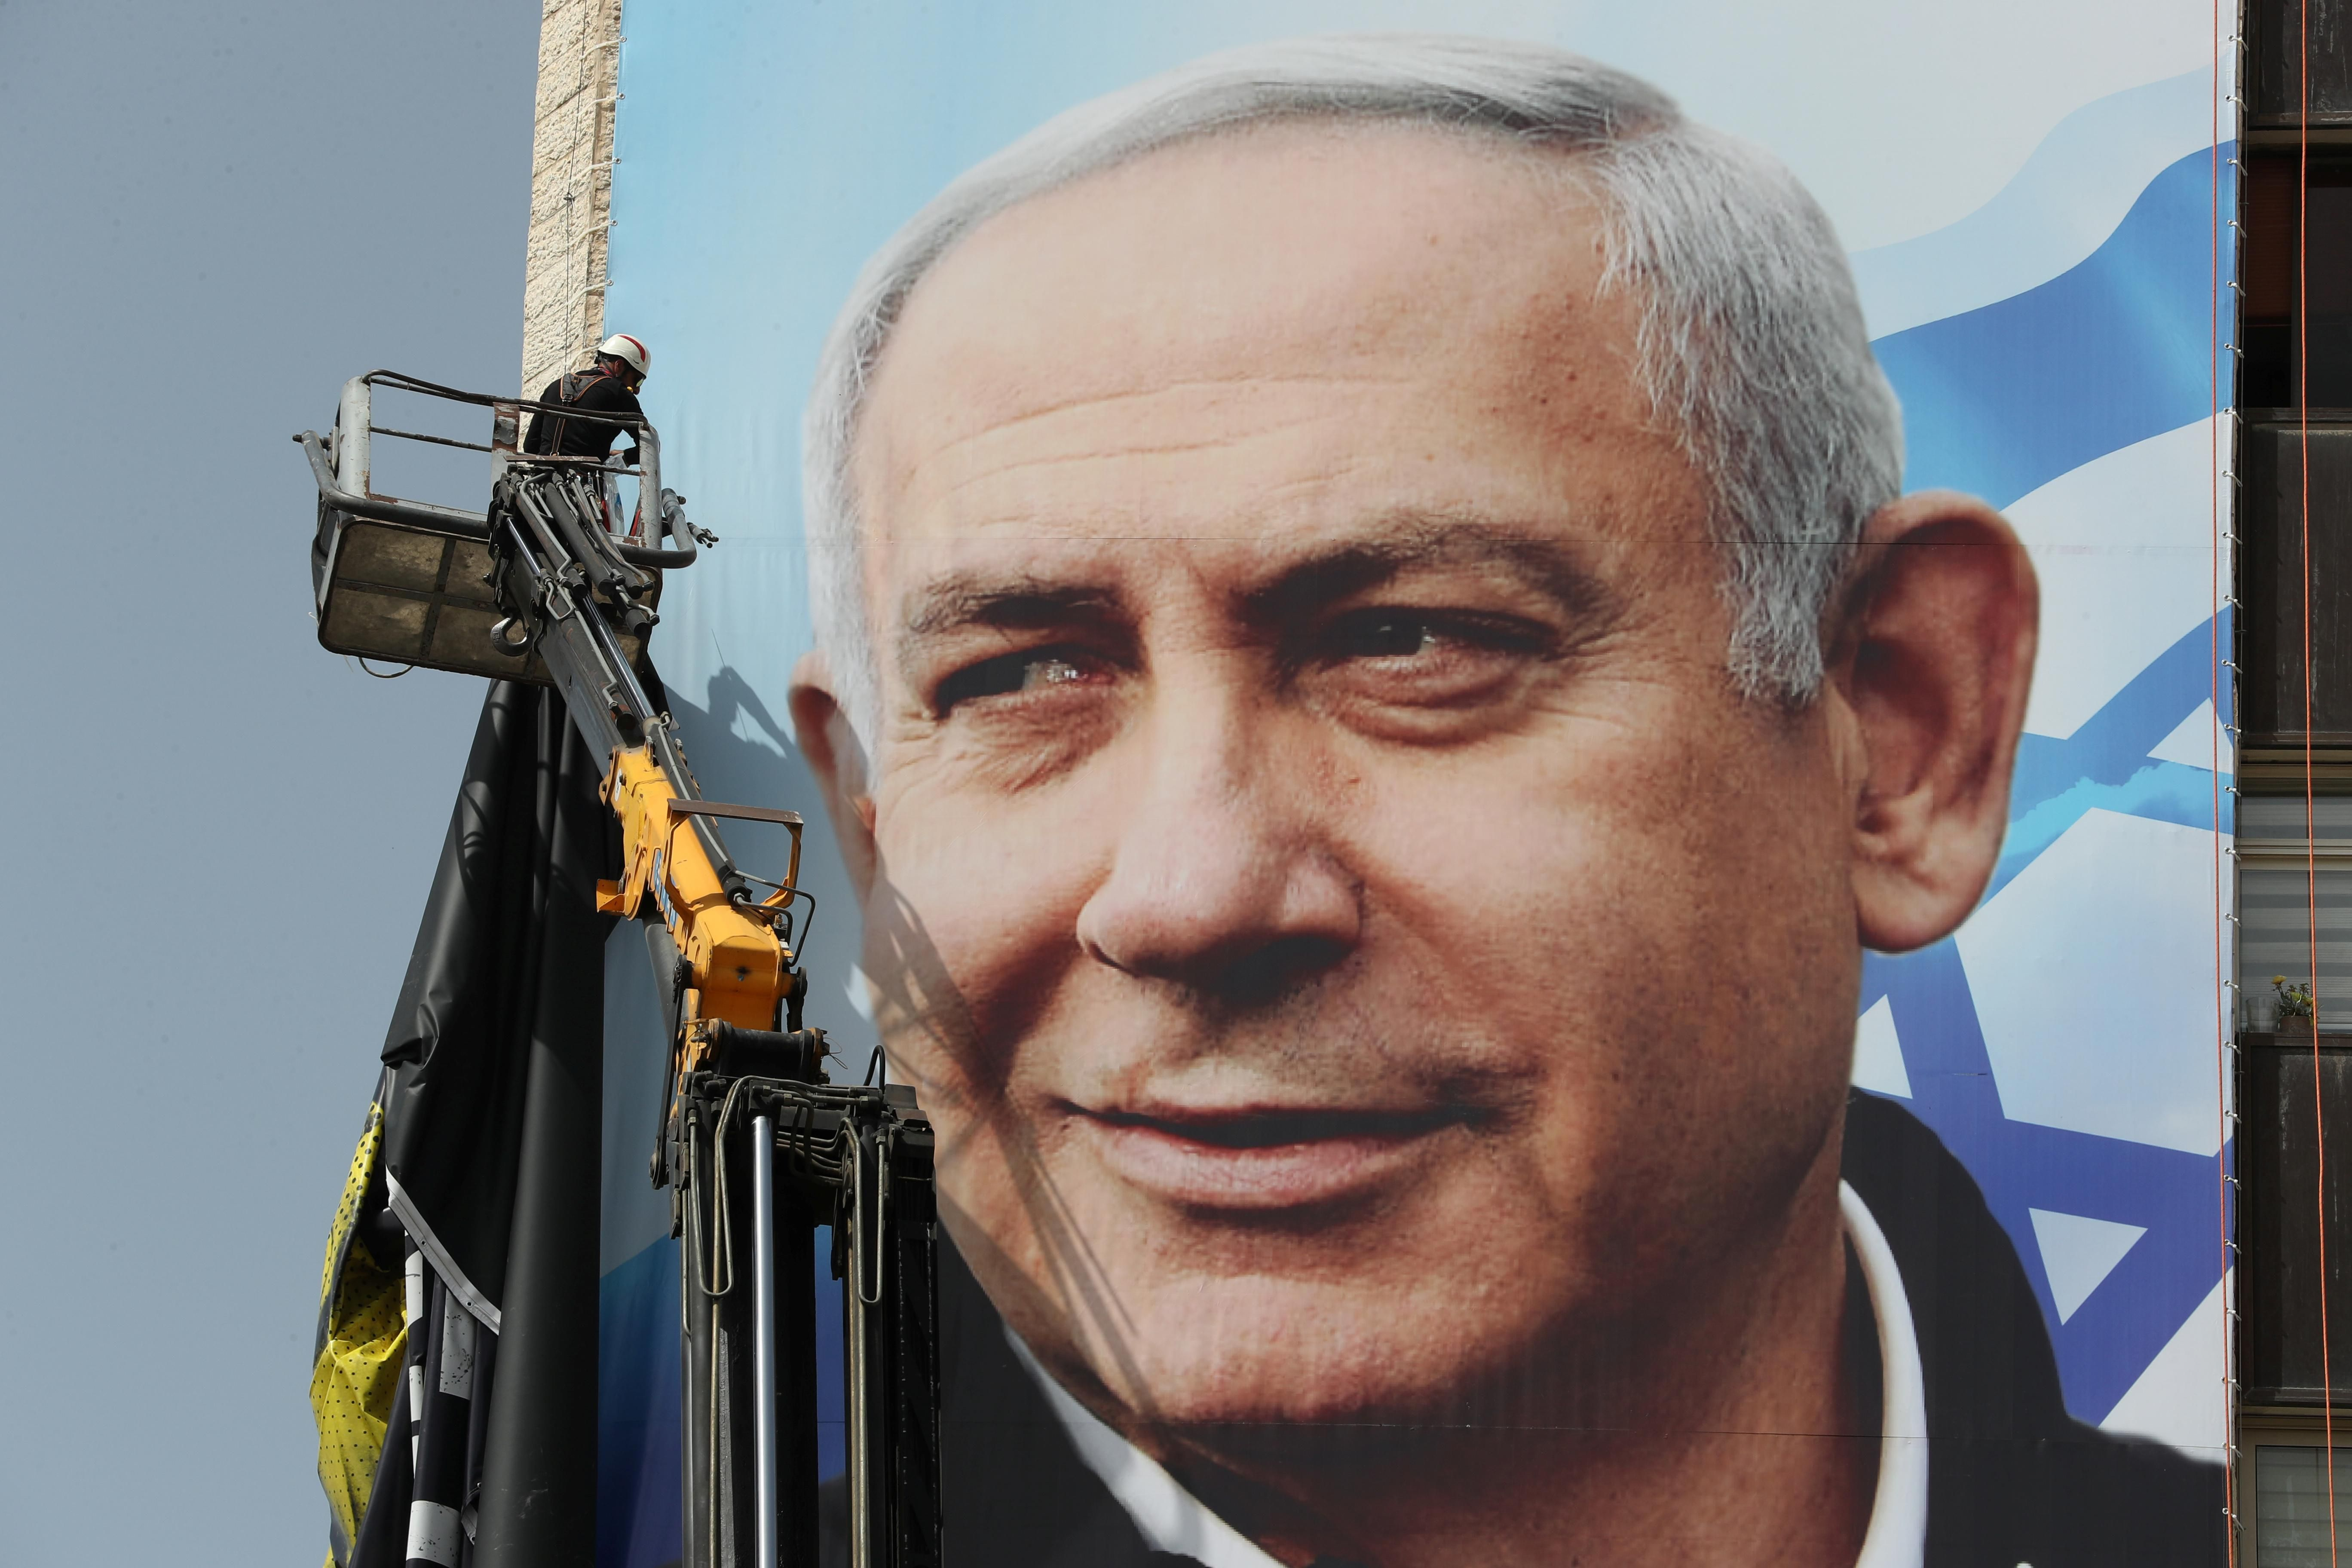 A labourer hangs a Likud party election campaign banner depicting party leader Israeli Prime Minister Benjamin Netanyahu, ahead of a March 23 ballot, in Jerusalem March 10, 2021.